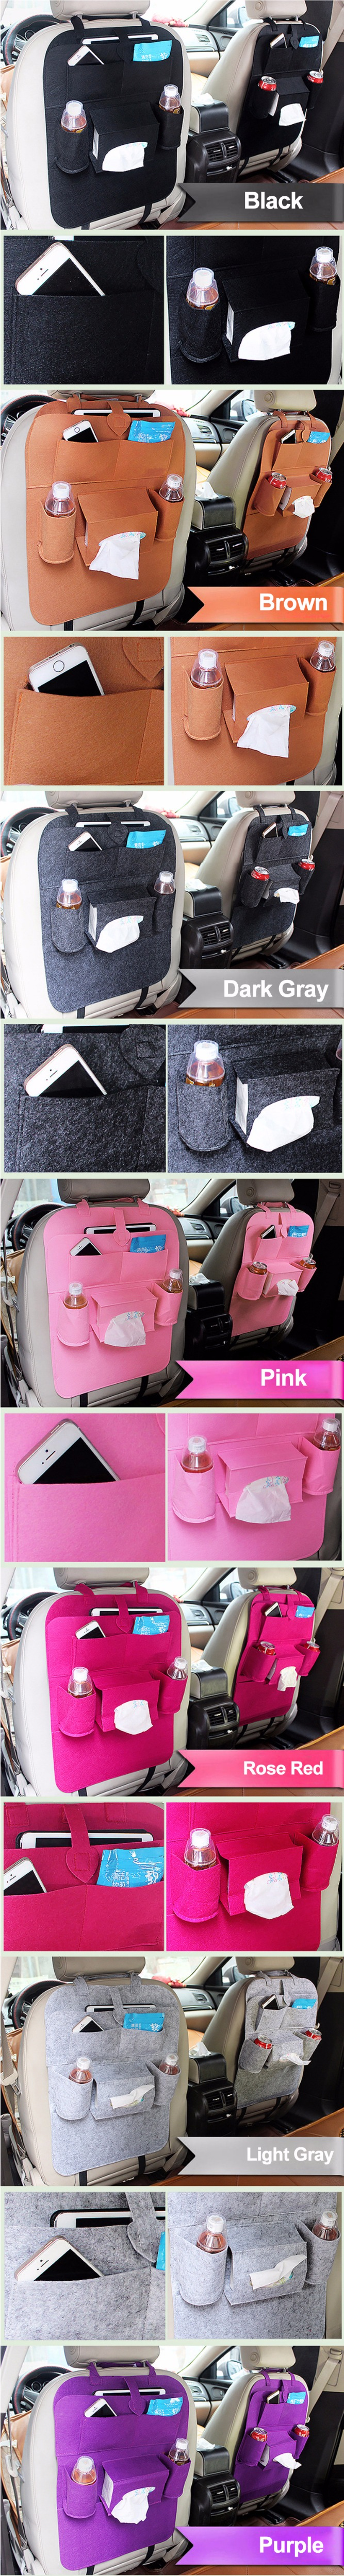 05 Car-styling Car Seat Cover